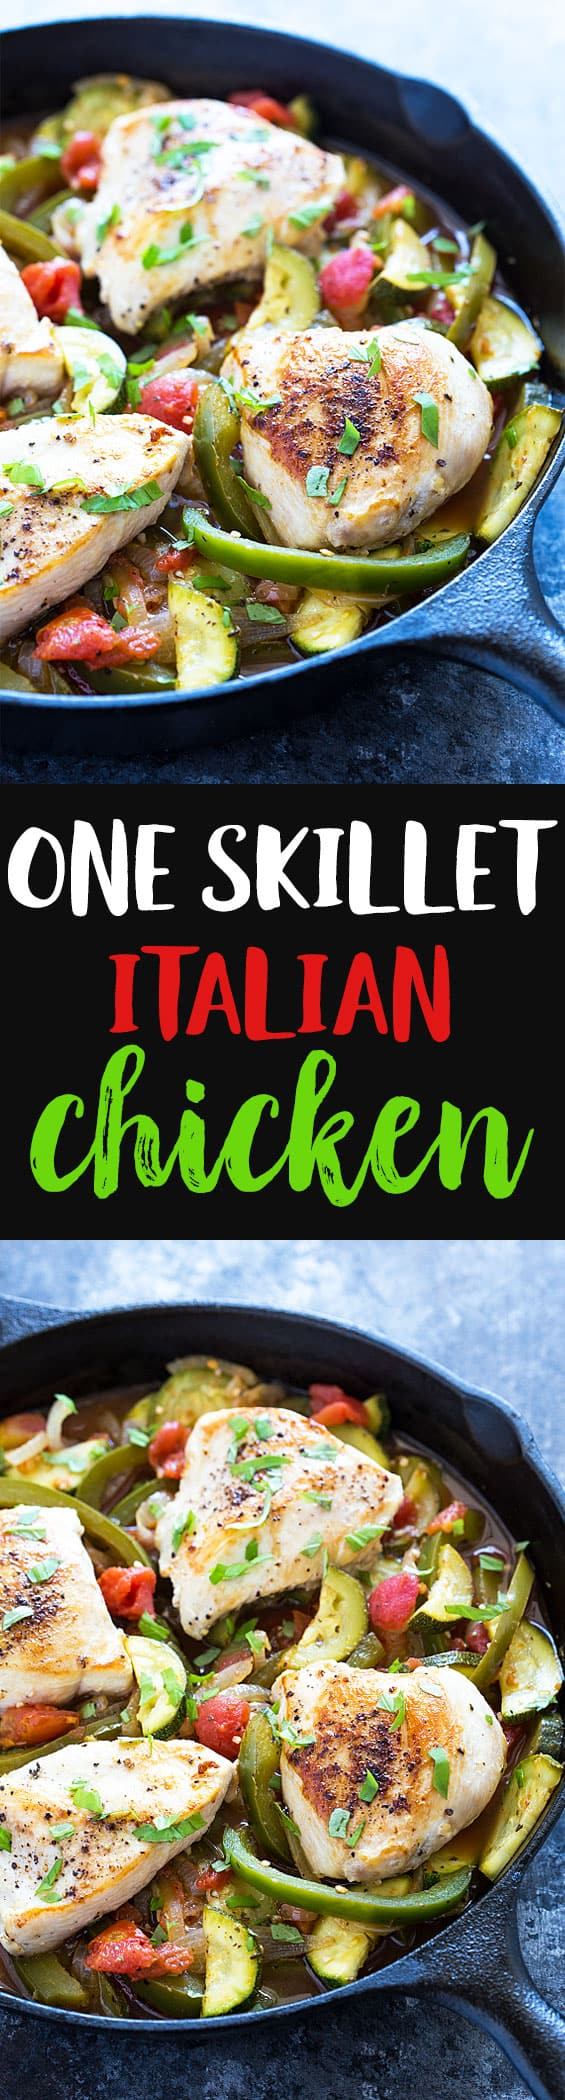 Two images of baked chicken in a skillet.  Text in center says one skillet Italian chicken.